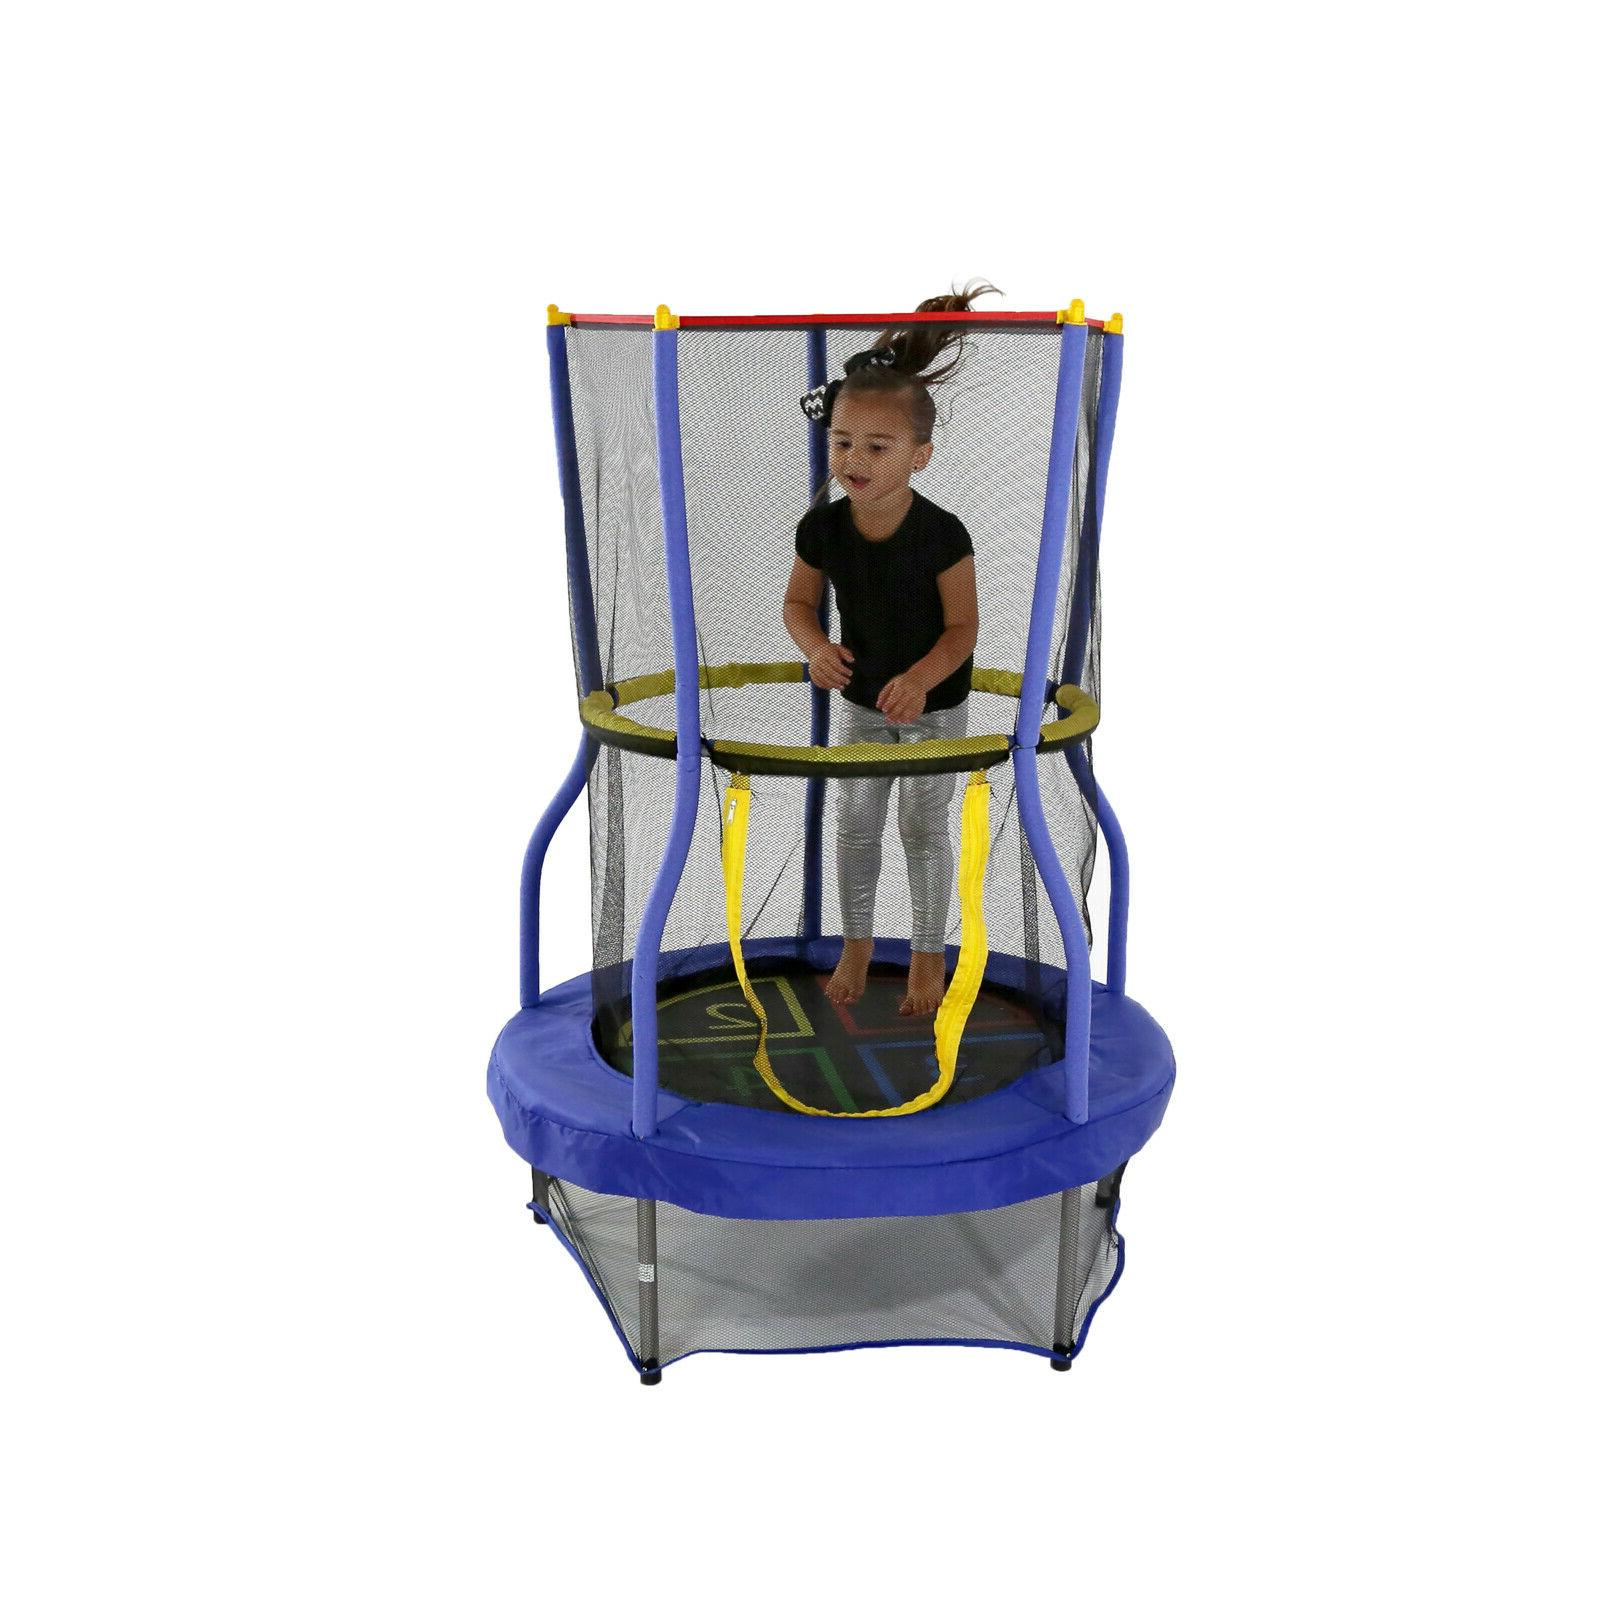 "Skywalker Trampolines Bounce-N-Learn 40"" Trampoline with Enc"